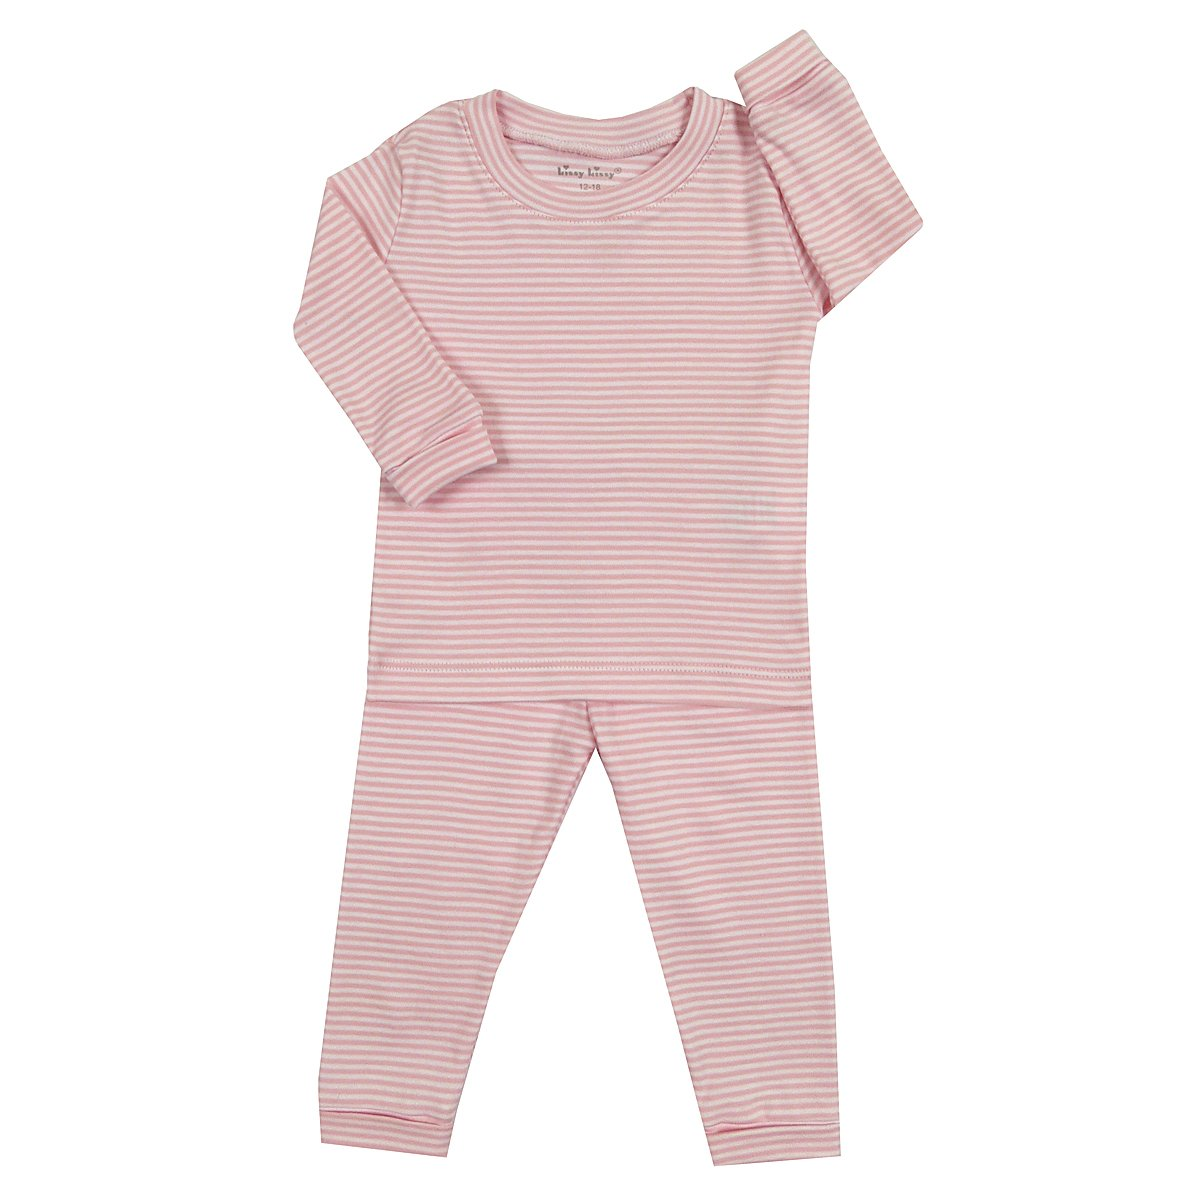 Kissy Kissy Baby Girls Pajamas Year Round Stripe Pink